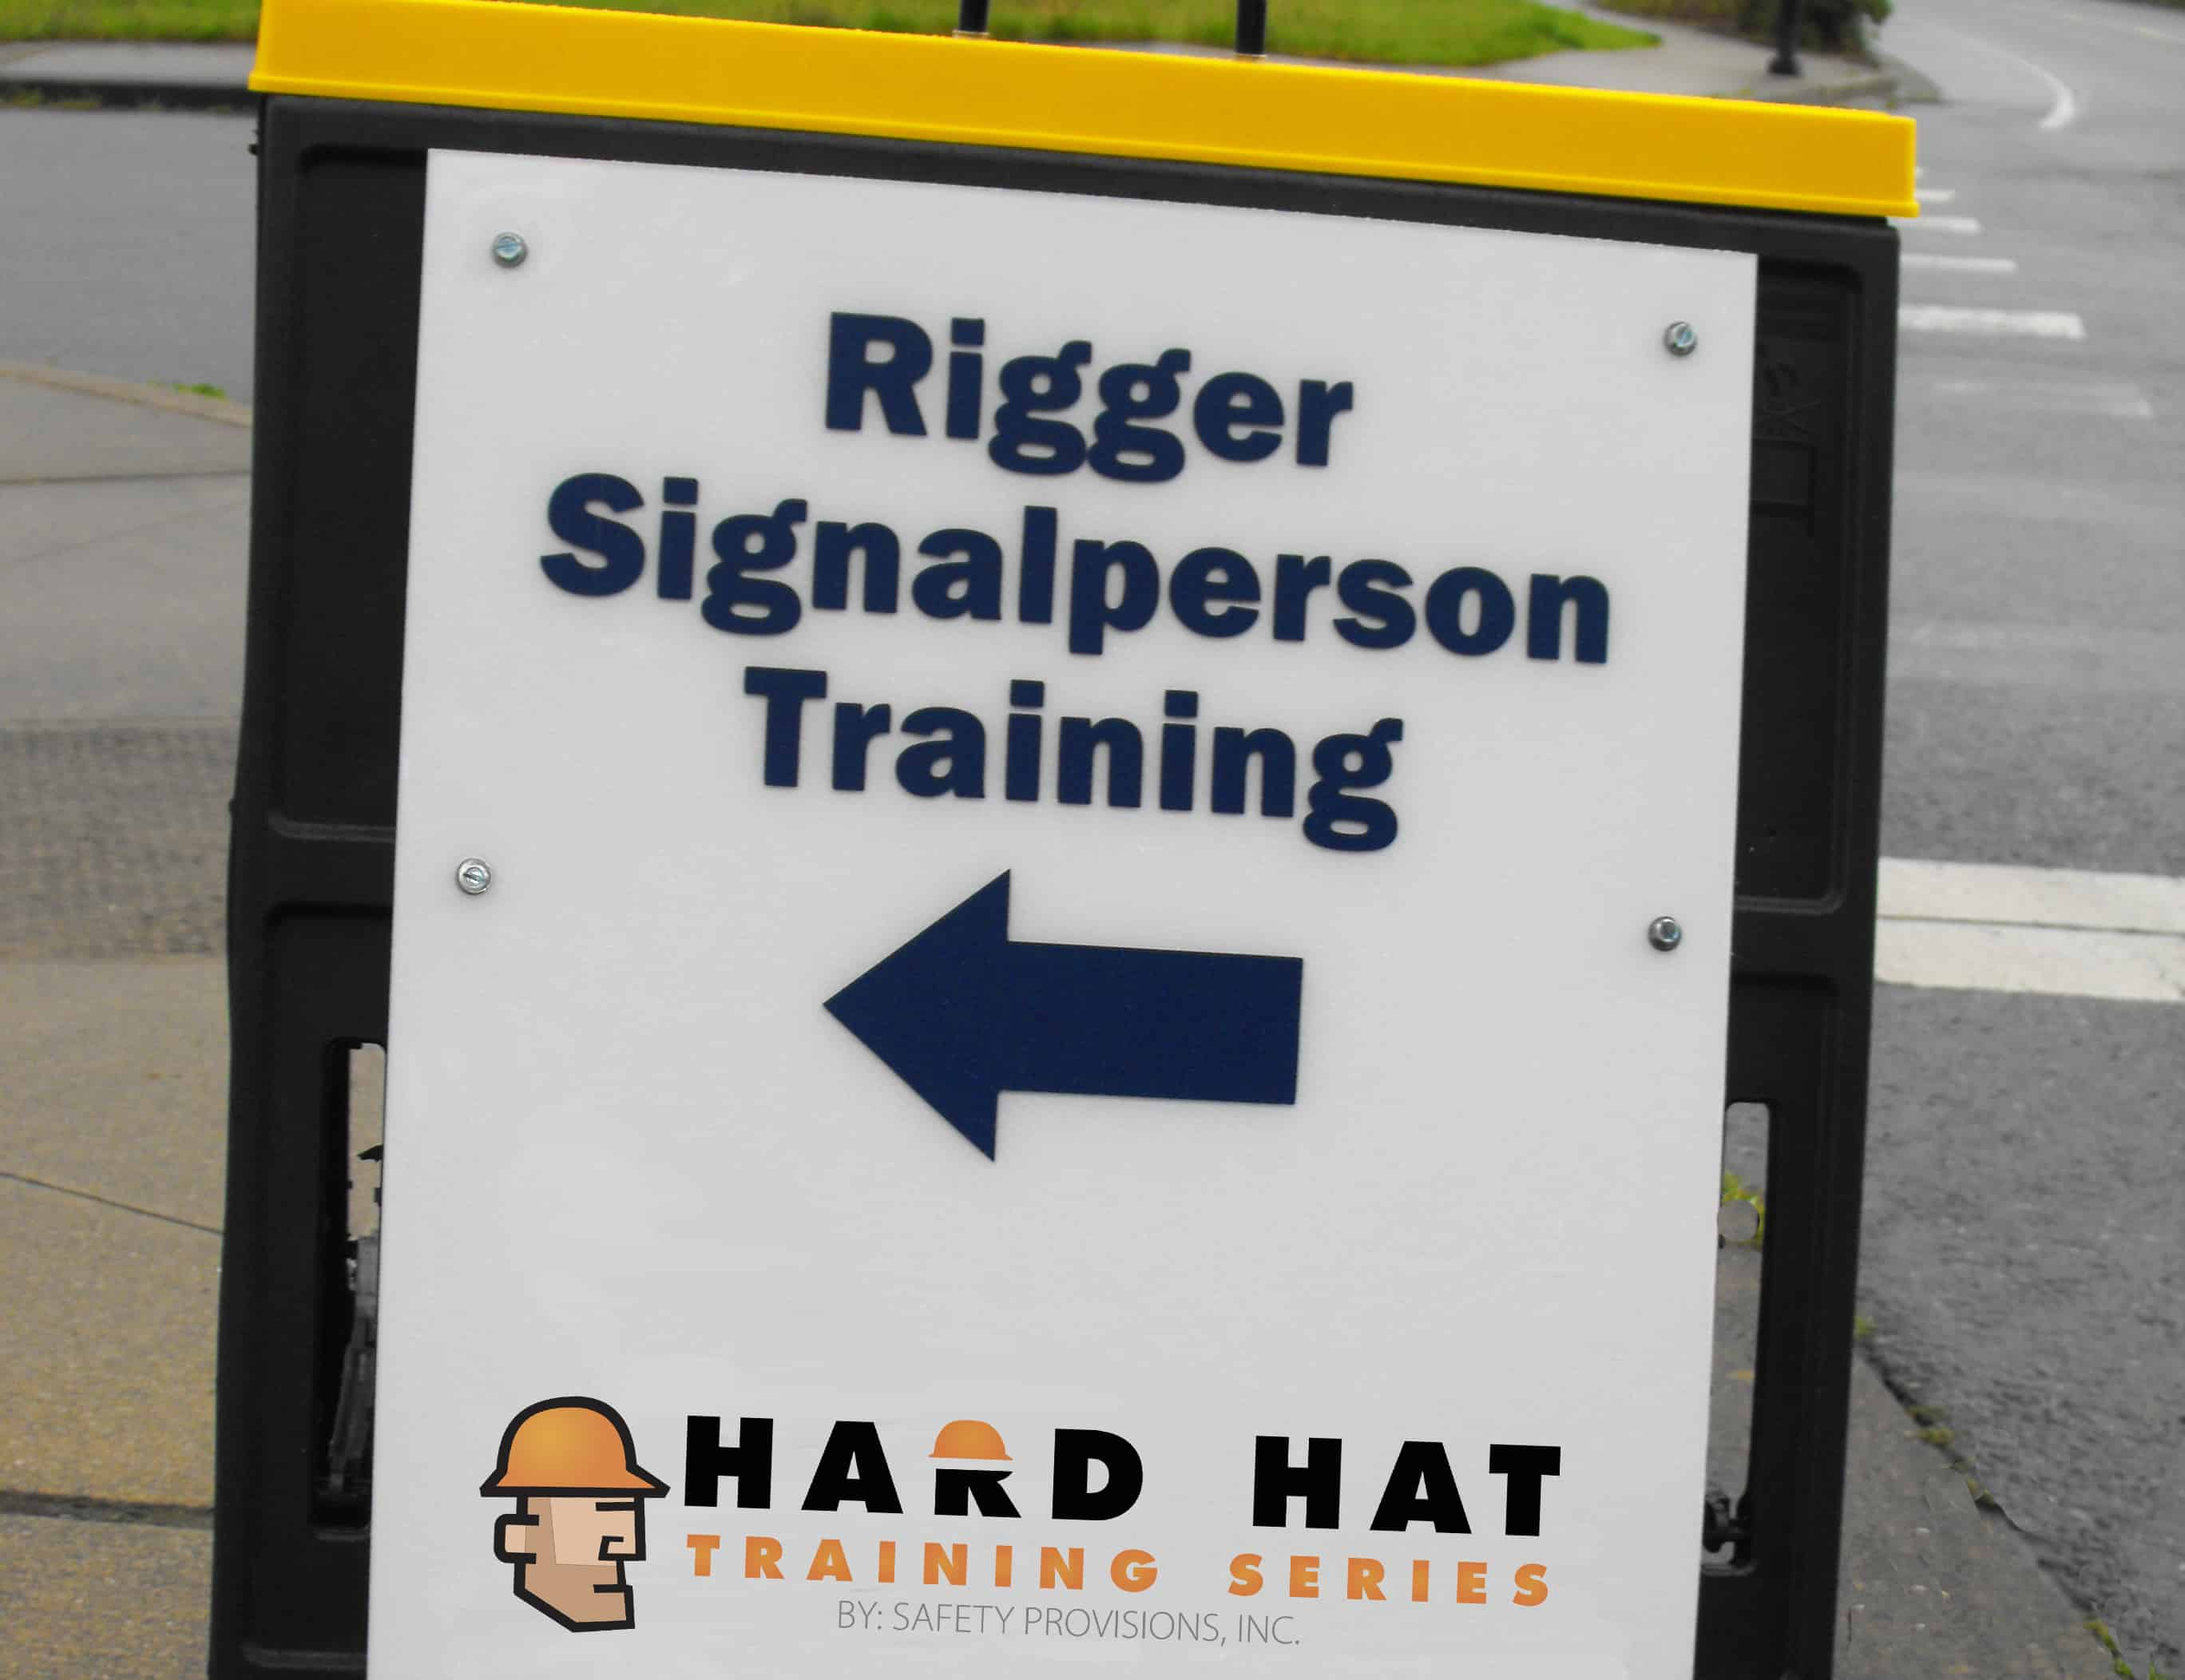 Onsite Training (Onsite Rigger and Signaler Training) by Hard Hat Training